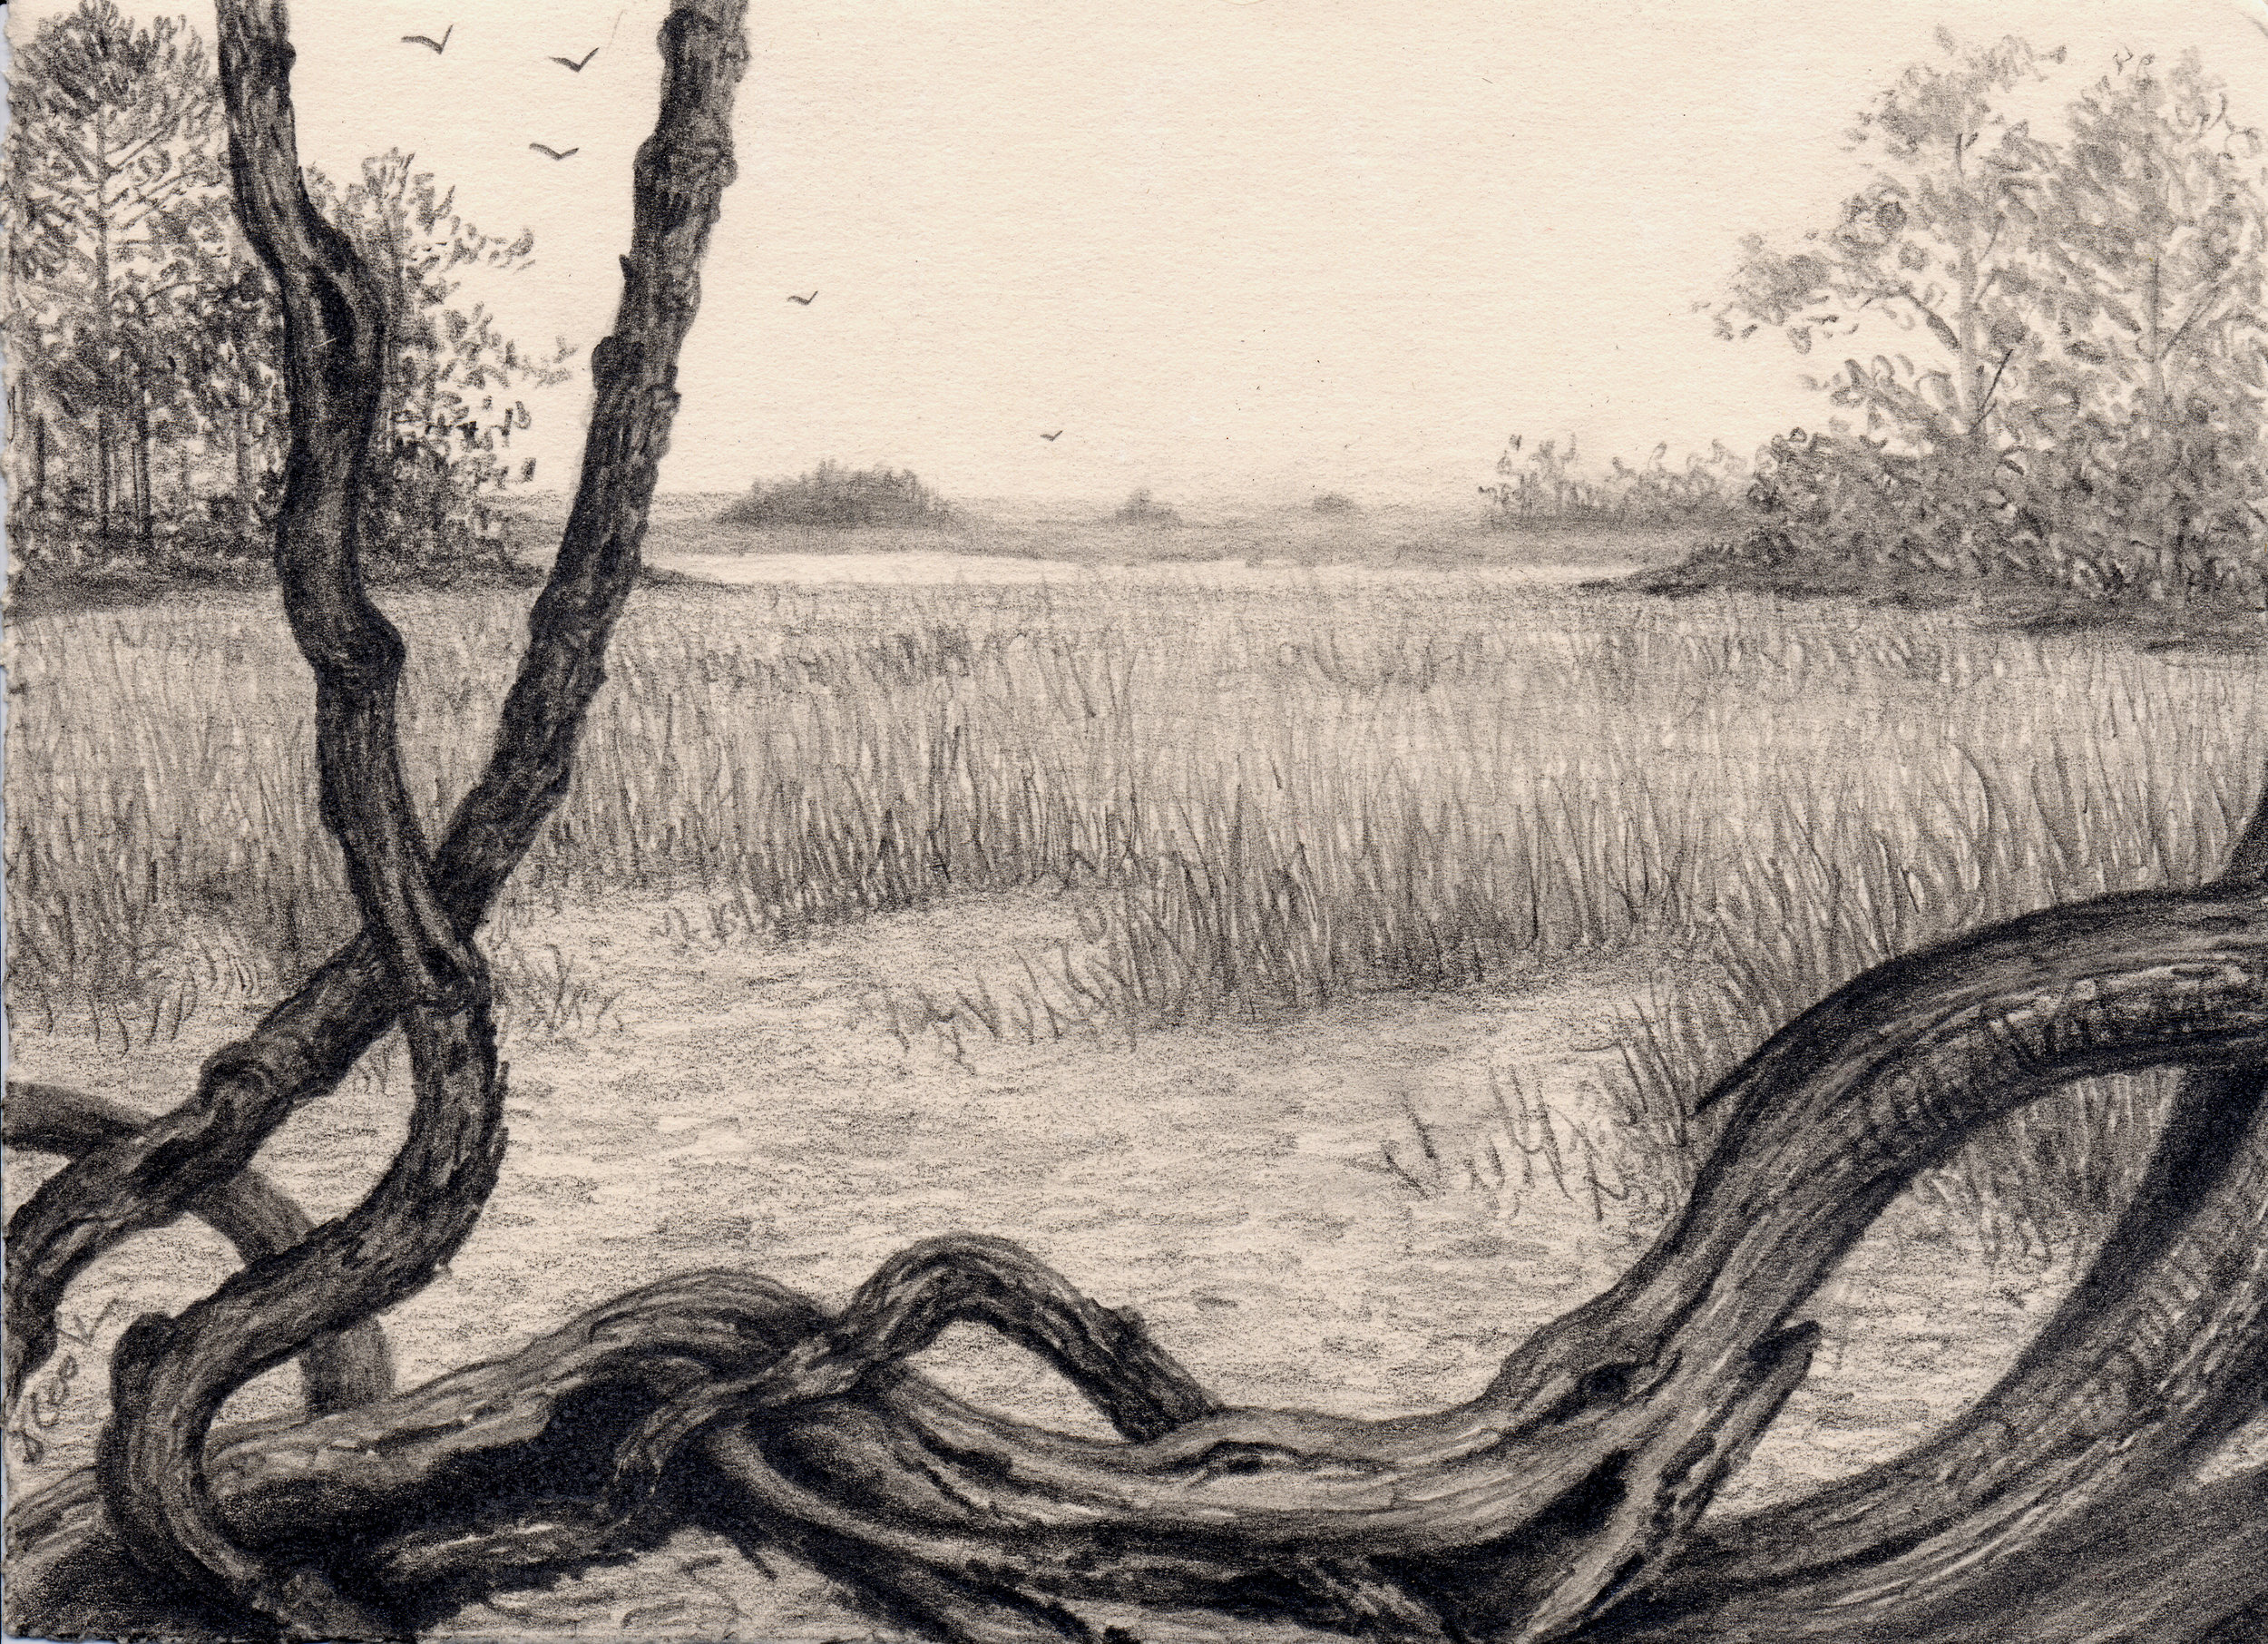 The Marshes of McIntosh, graphite, Jeannine Cook artist, Private collection